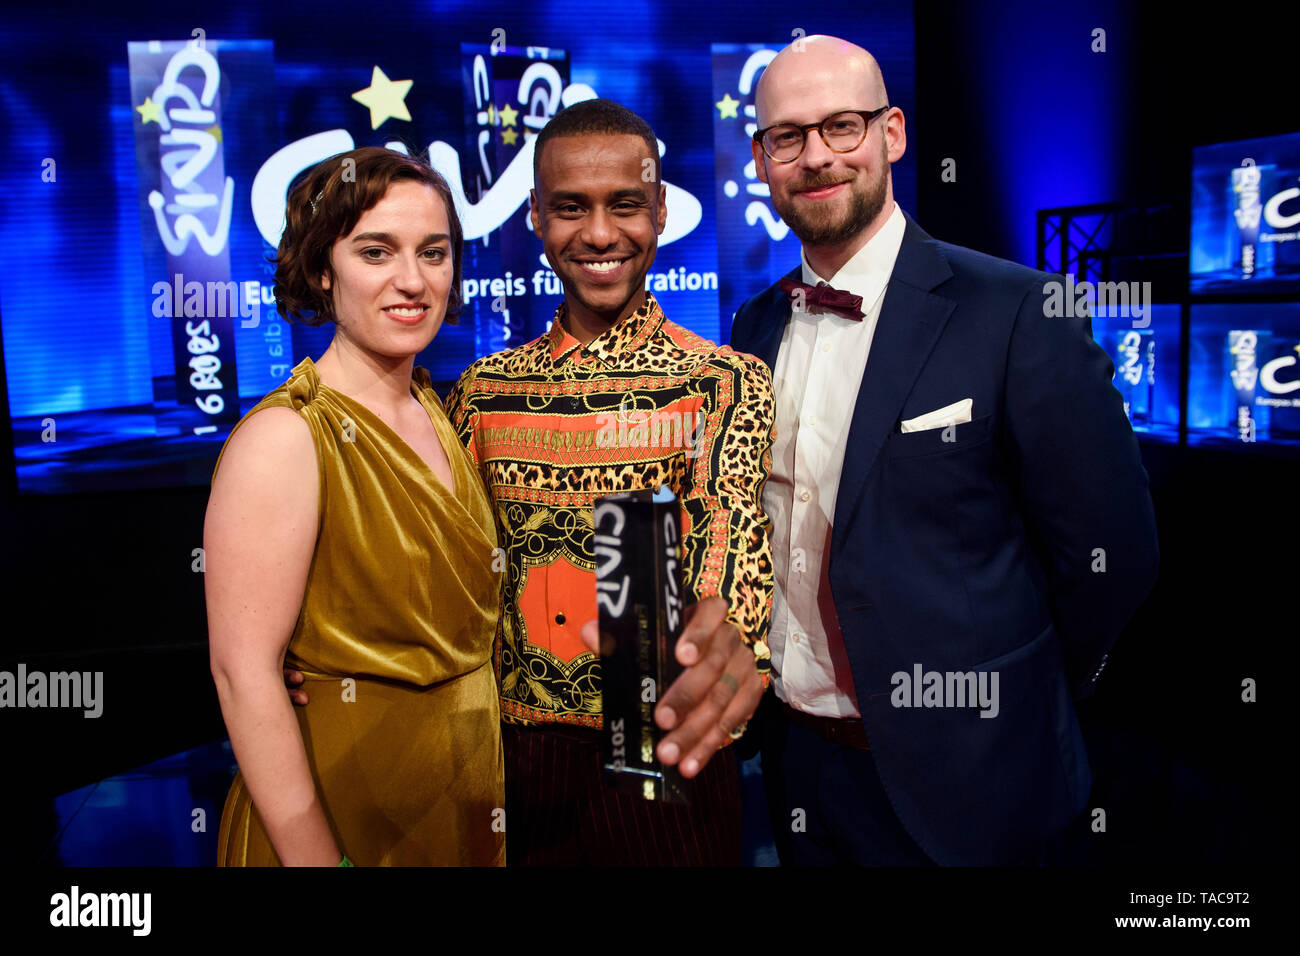 """Berlin, Germany. 23rd May, 2019. Mirjam Wlodawer, Tarik Tesfu, and Nicolas de Leval Jezierski, winner of the CIVIS Media Prize for their web video Jäger & Sammler: Stadt. Country. home,"""" stand on stage with their prize in their hand. The CIVIS Media Prize is awarded for the 32nd time and honours European programme achievements in the field of migration, integration and cultural diversity. Credit: Gregor Fischer/dpa/Alamy Live News Stock Photo"""